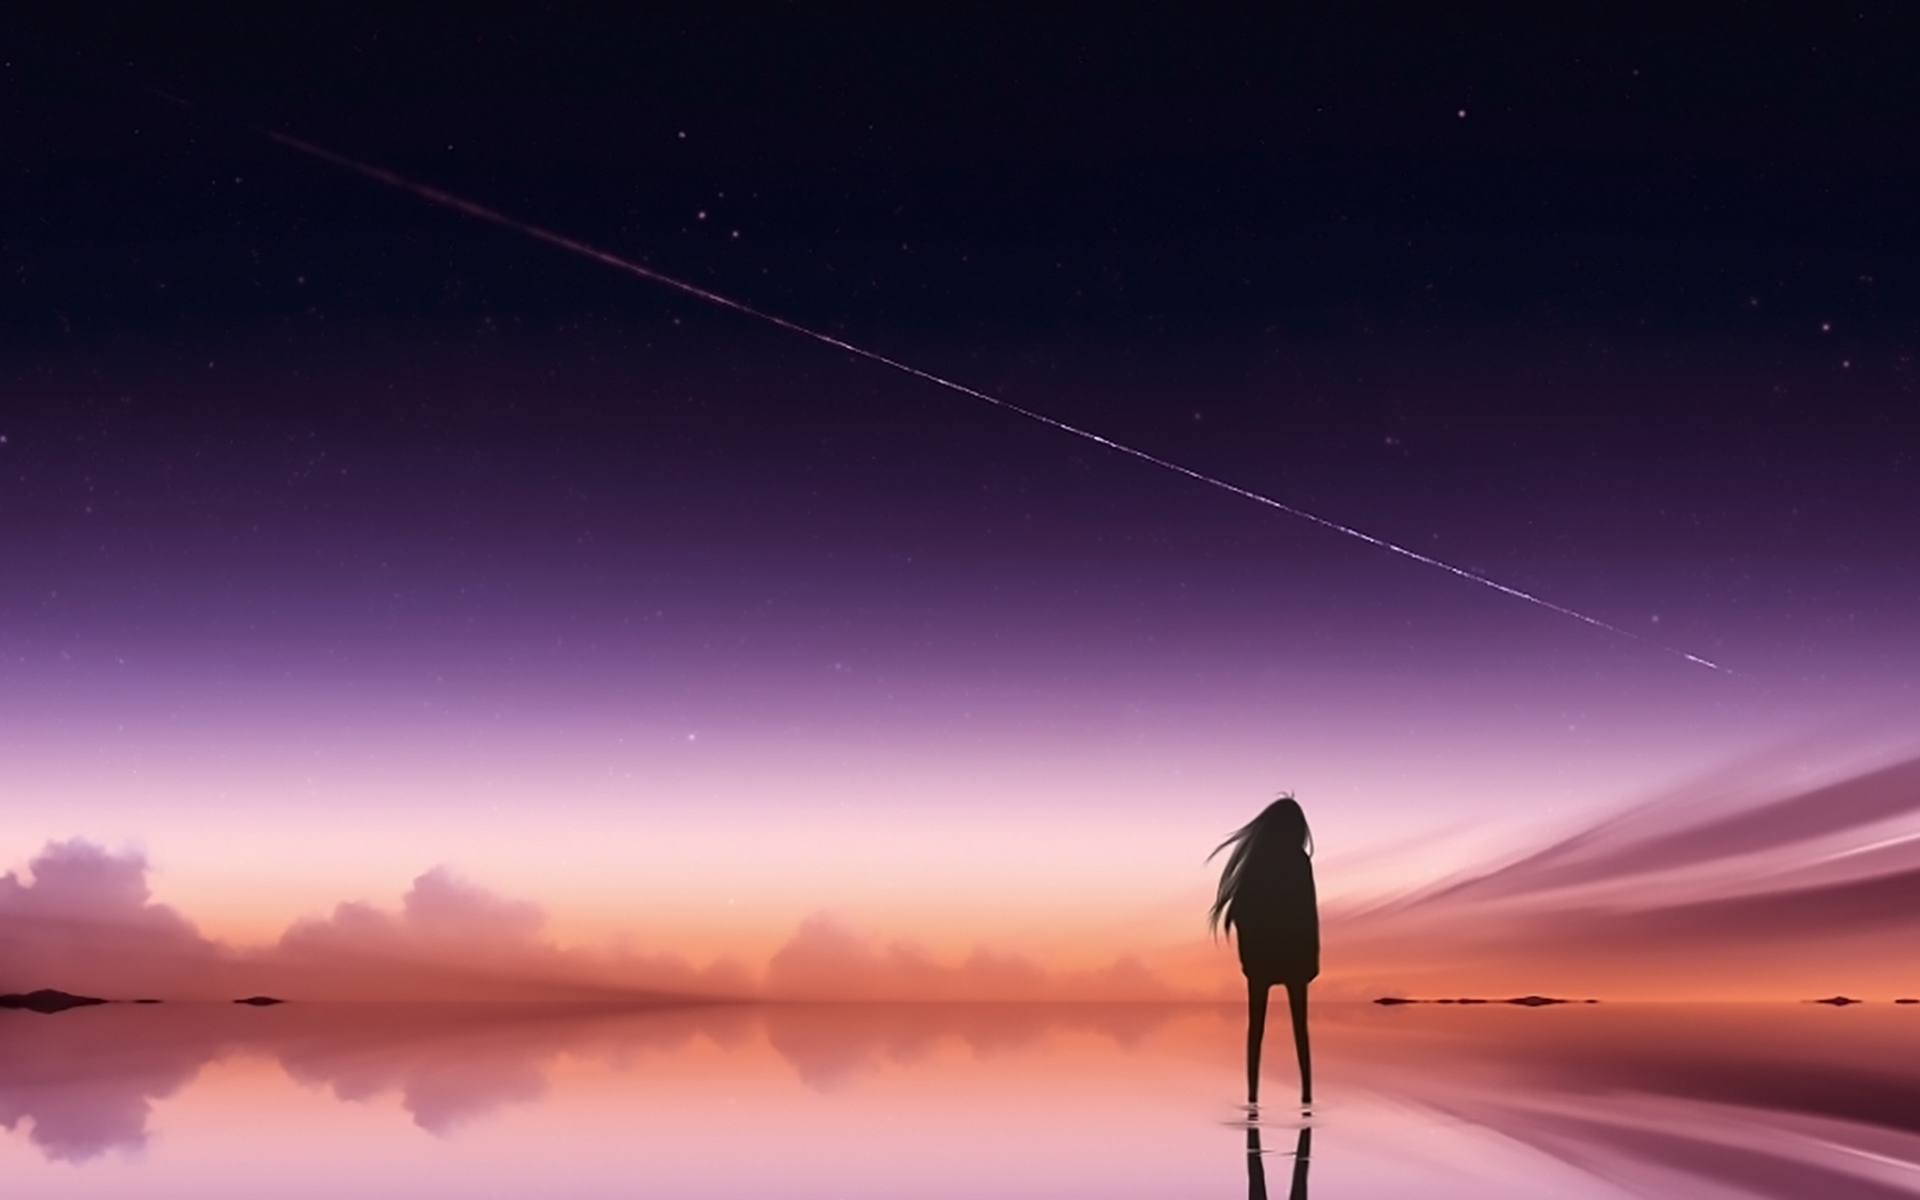 1920x1200 Anime Pink Sky Standing Alone 1080P Resolution ...